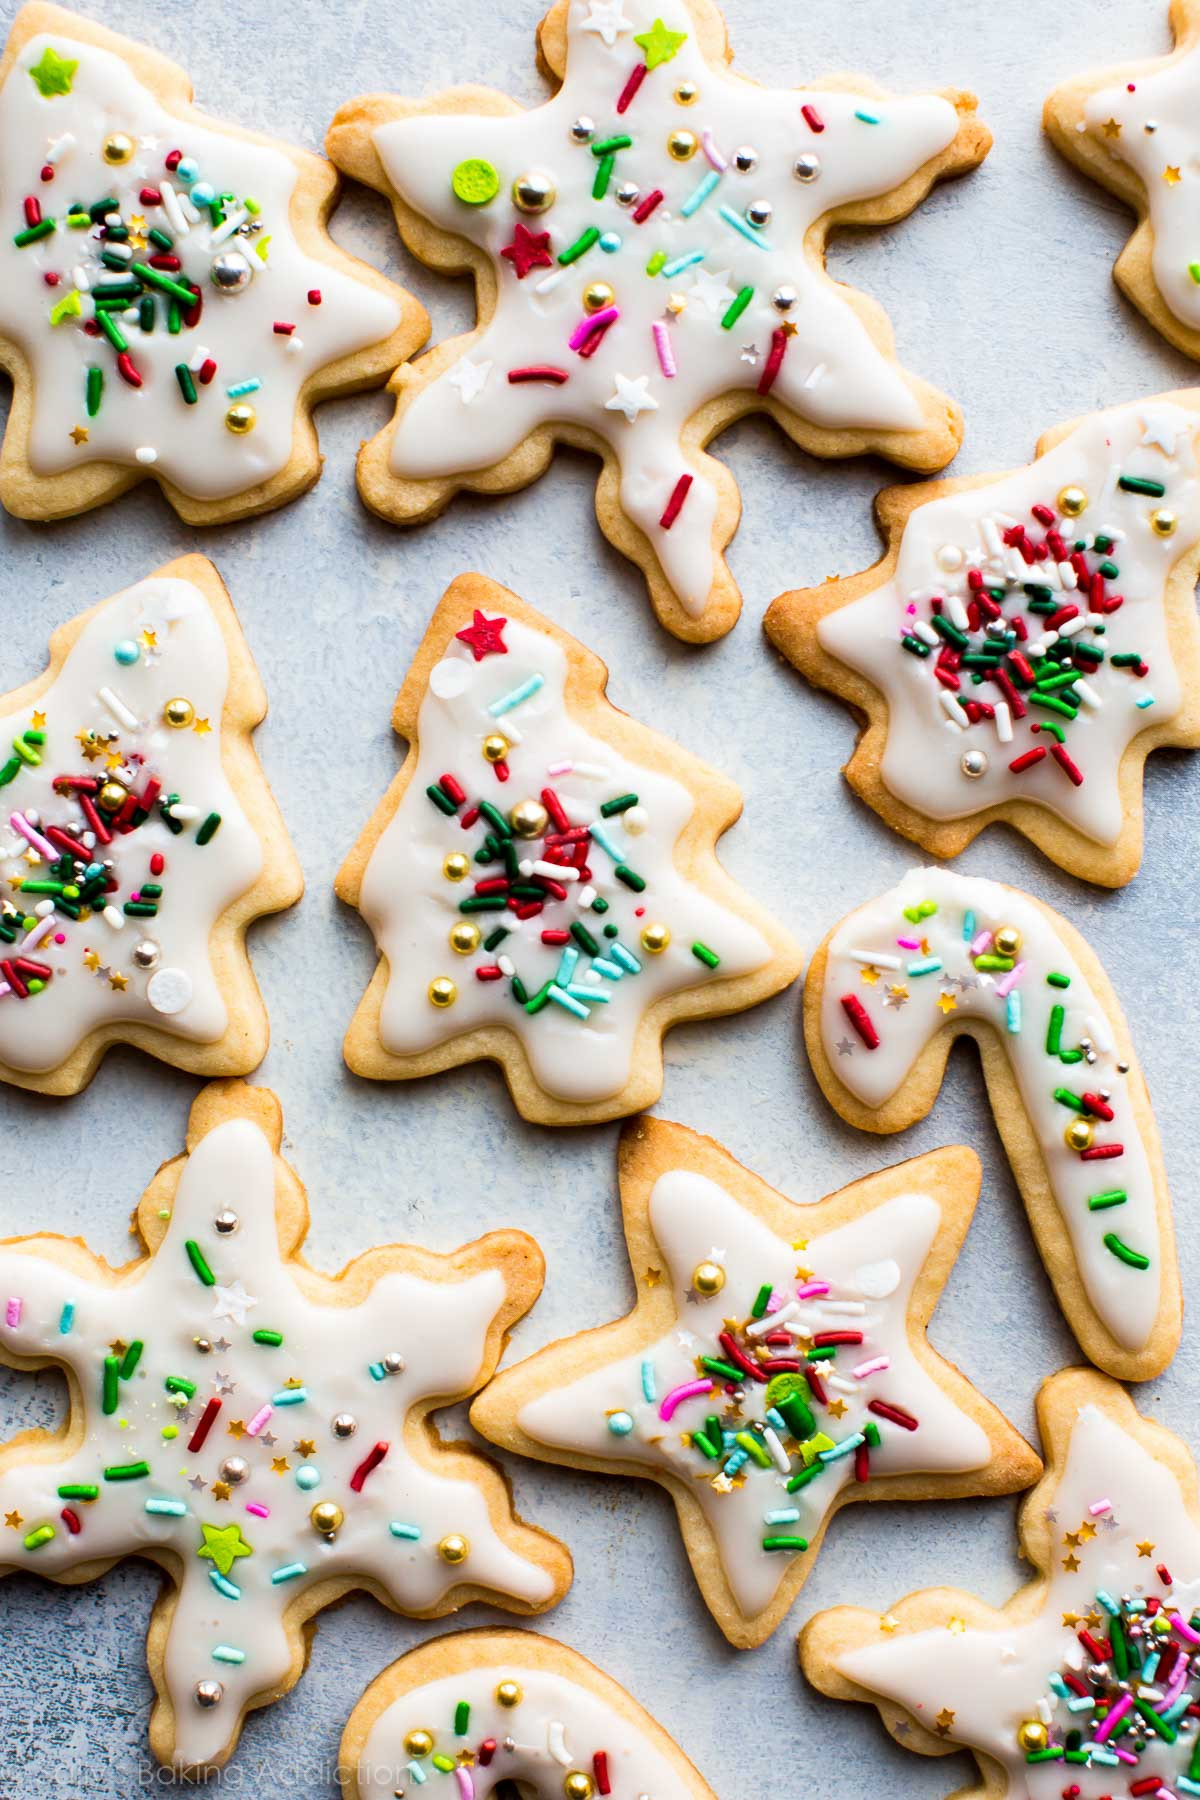 Icing For Christmas Cookies  Holiday Cut Out Sugar Cookies with Easy Icing Sallys